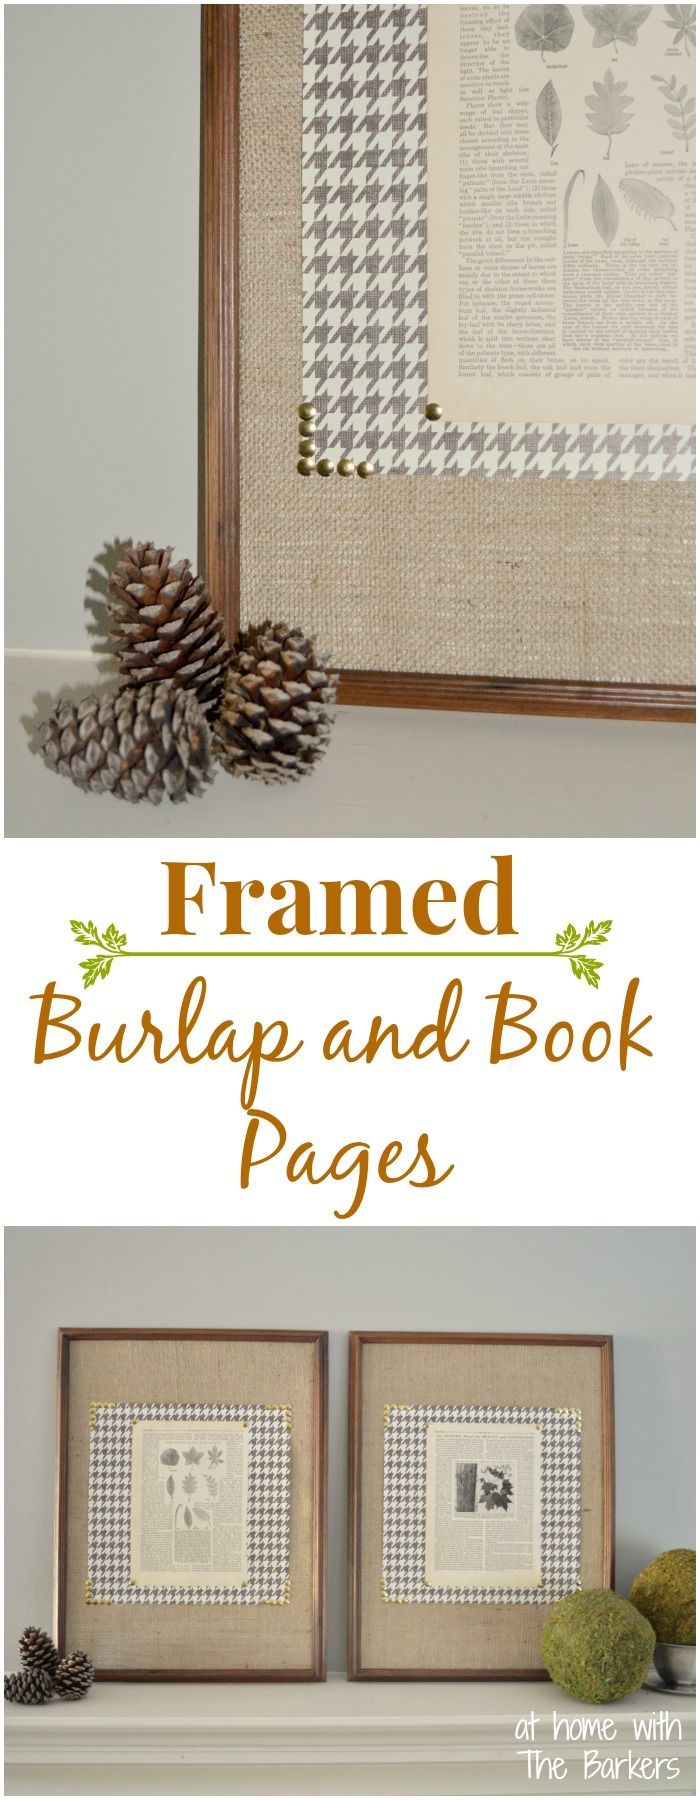 Framed Burlap and Book pages project | Crafts | Pinterest | Hessian ...